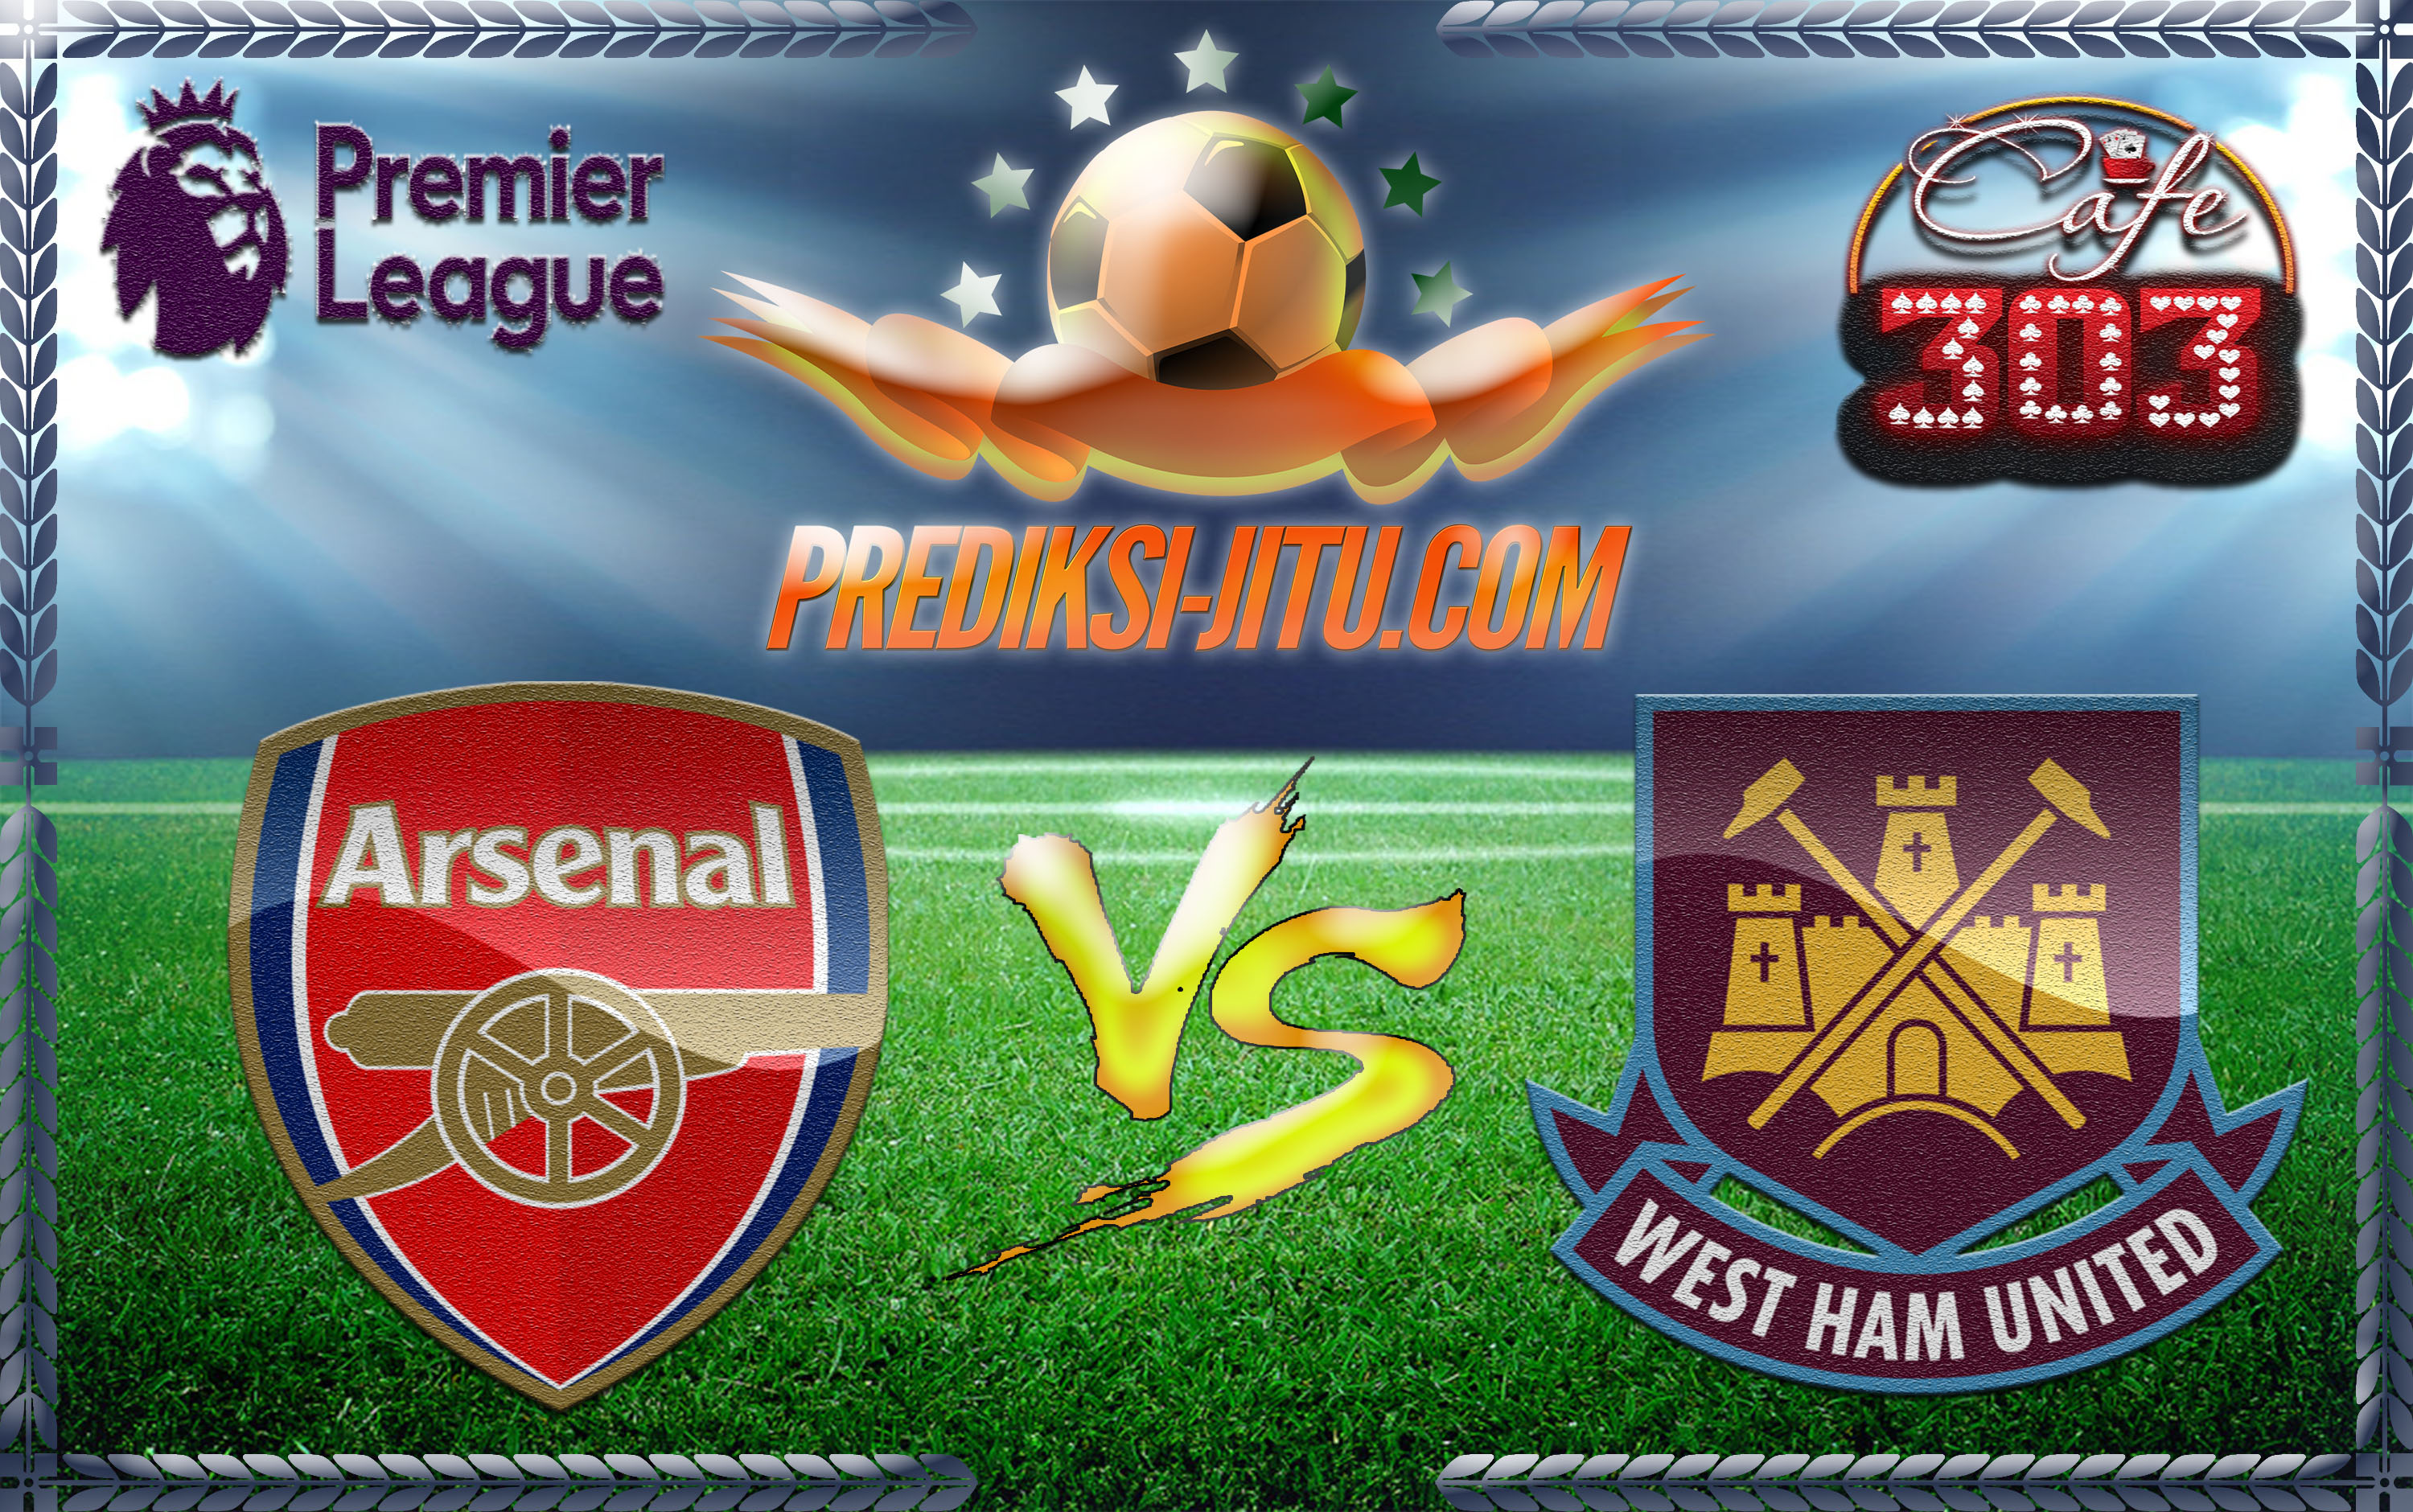 Prediksi Skor Arsenal Vs Westham United 6 April 2017